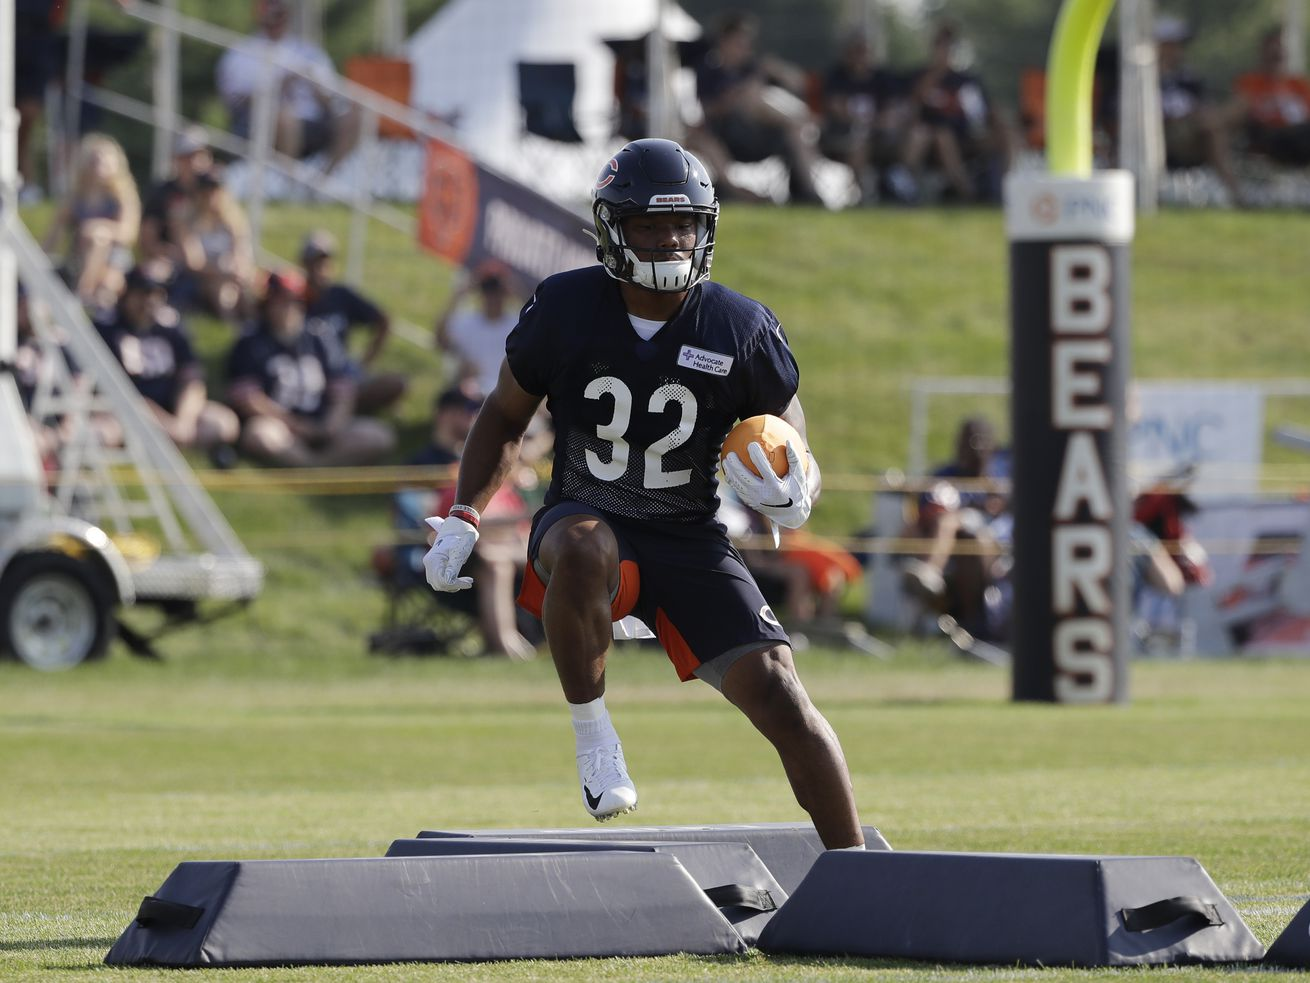 Bears' roster deadline cuts reveal their thinking at RB, CB, K